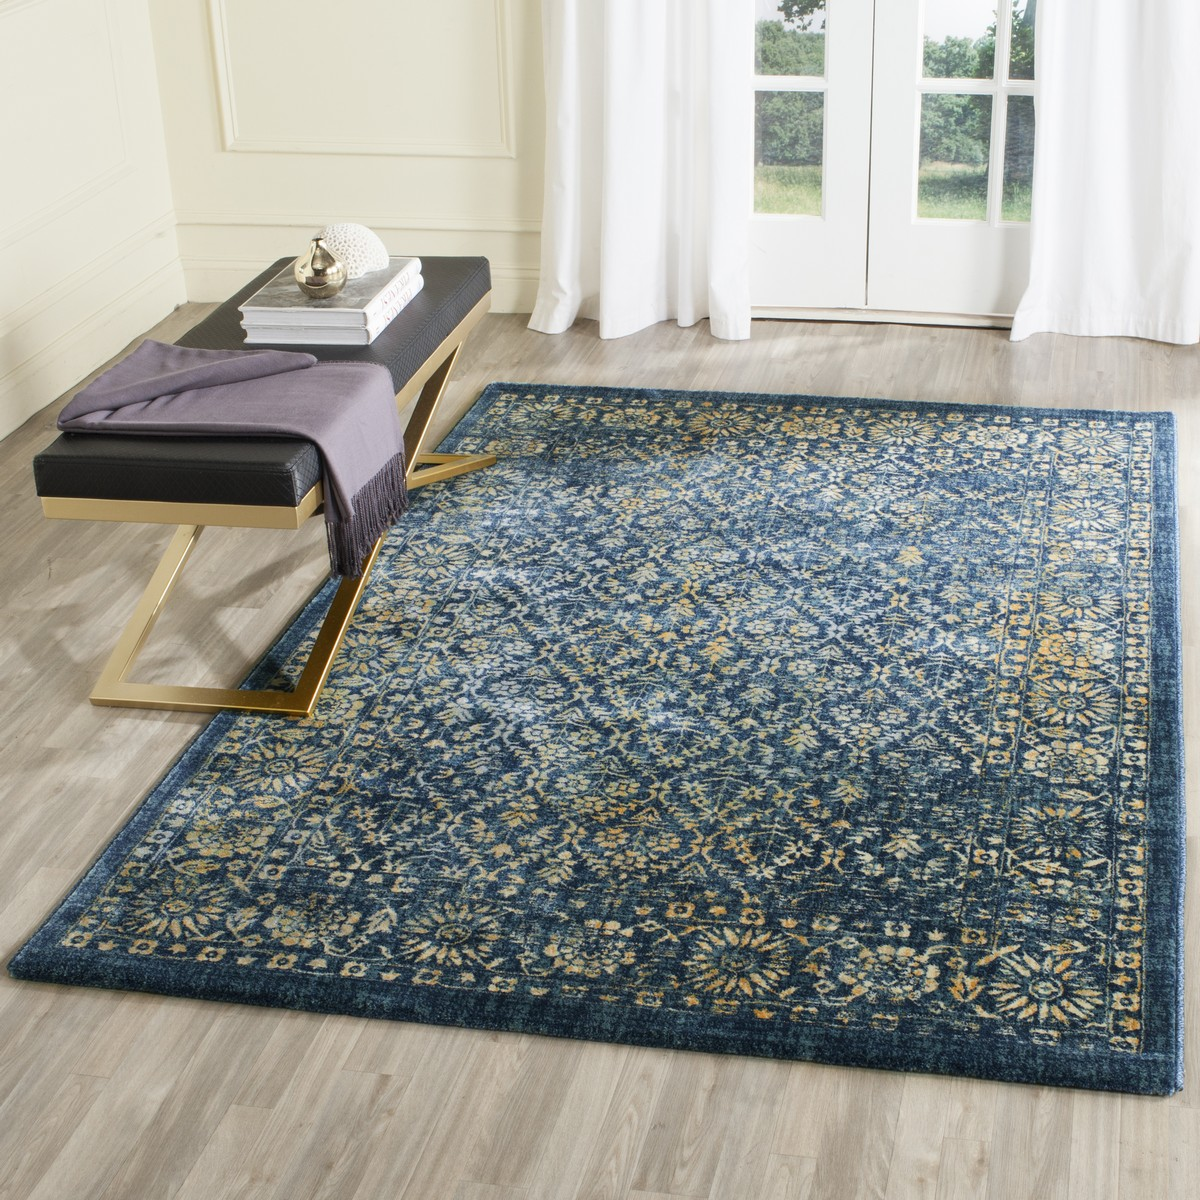 Rug Evk511a Evoke Area Rugs By Safavieh